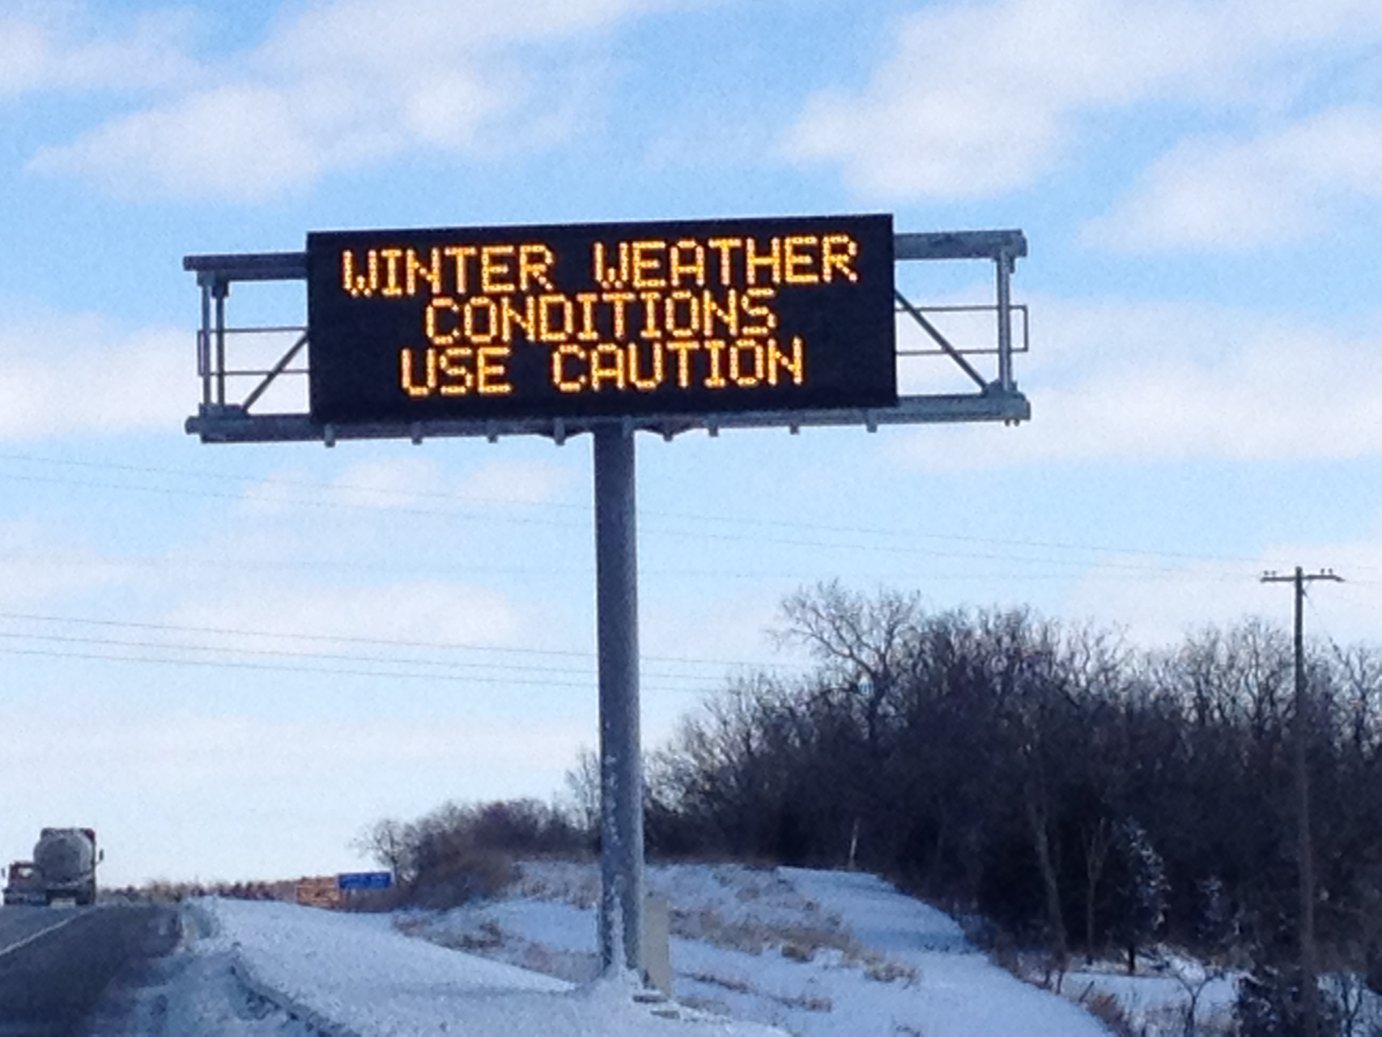 In this file photo, a digital sign alerts motorists to weather conditions along the Kansas Turnpike. (Photo by J. Schafer)